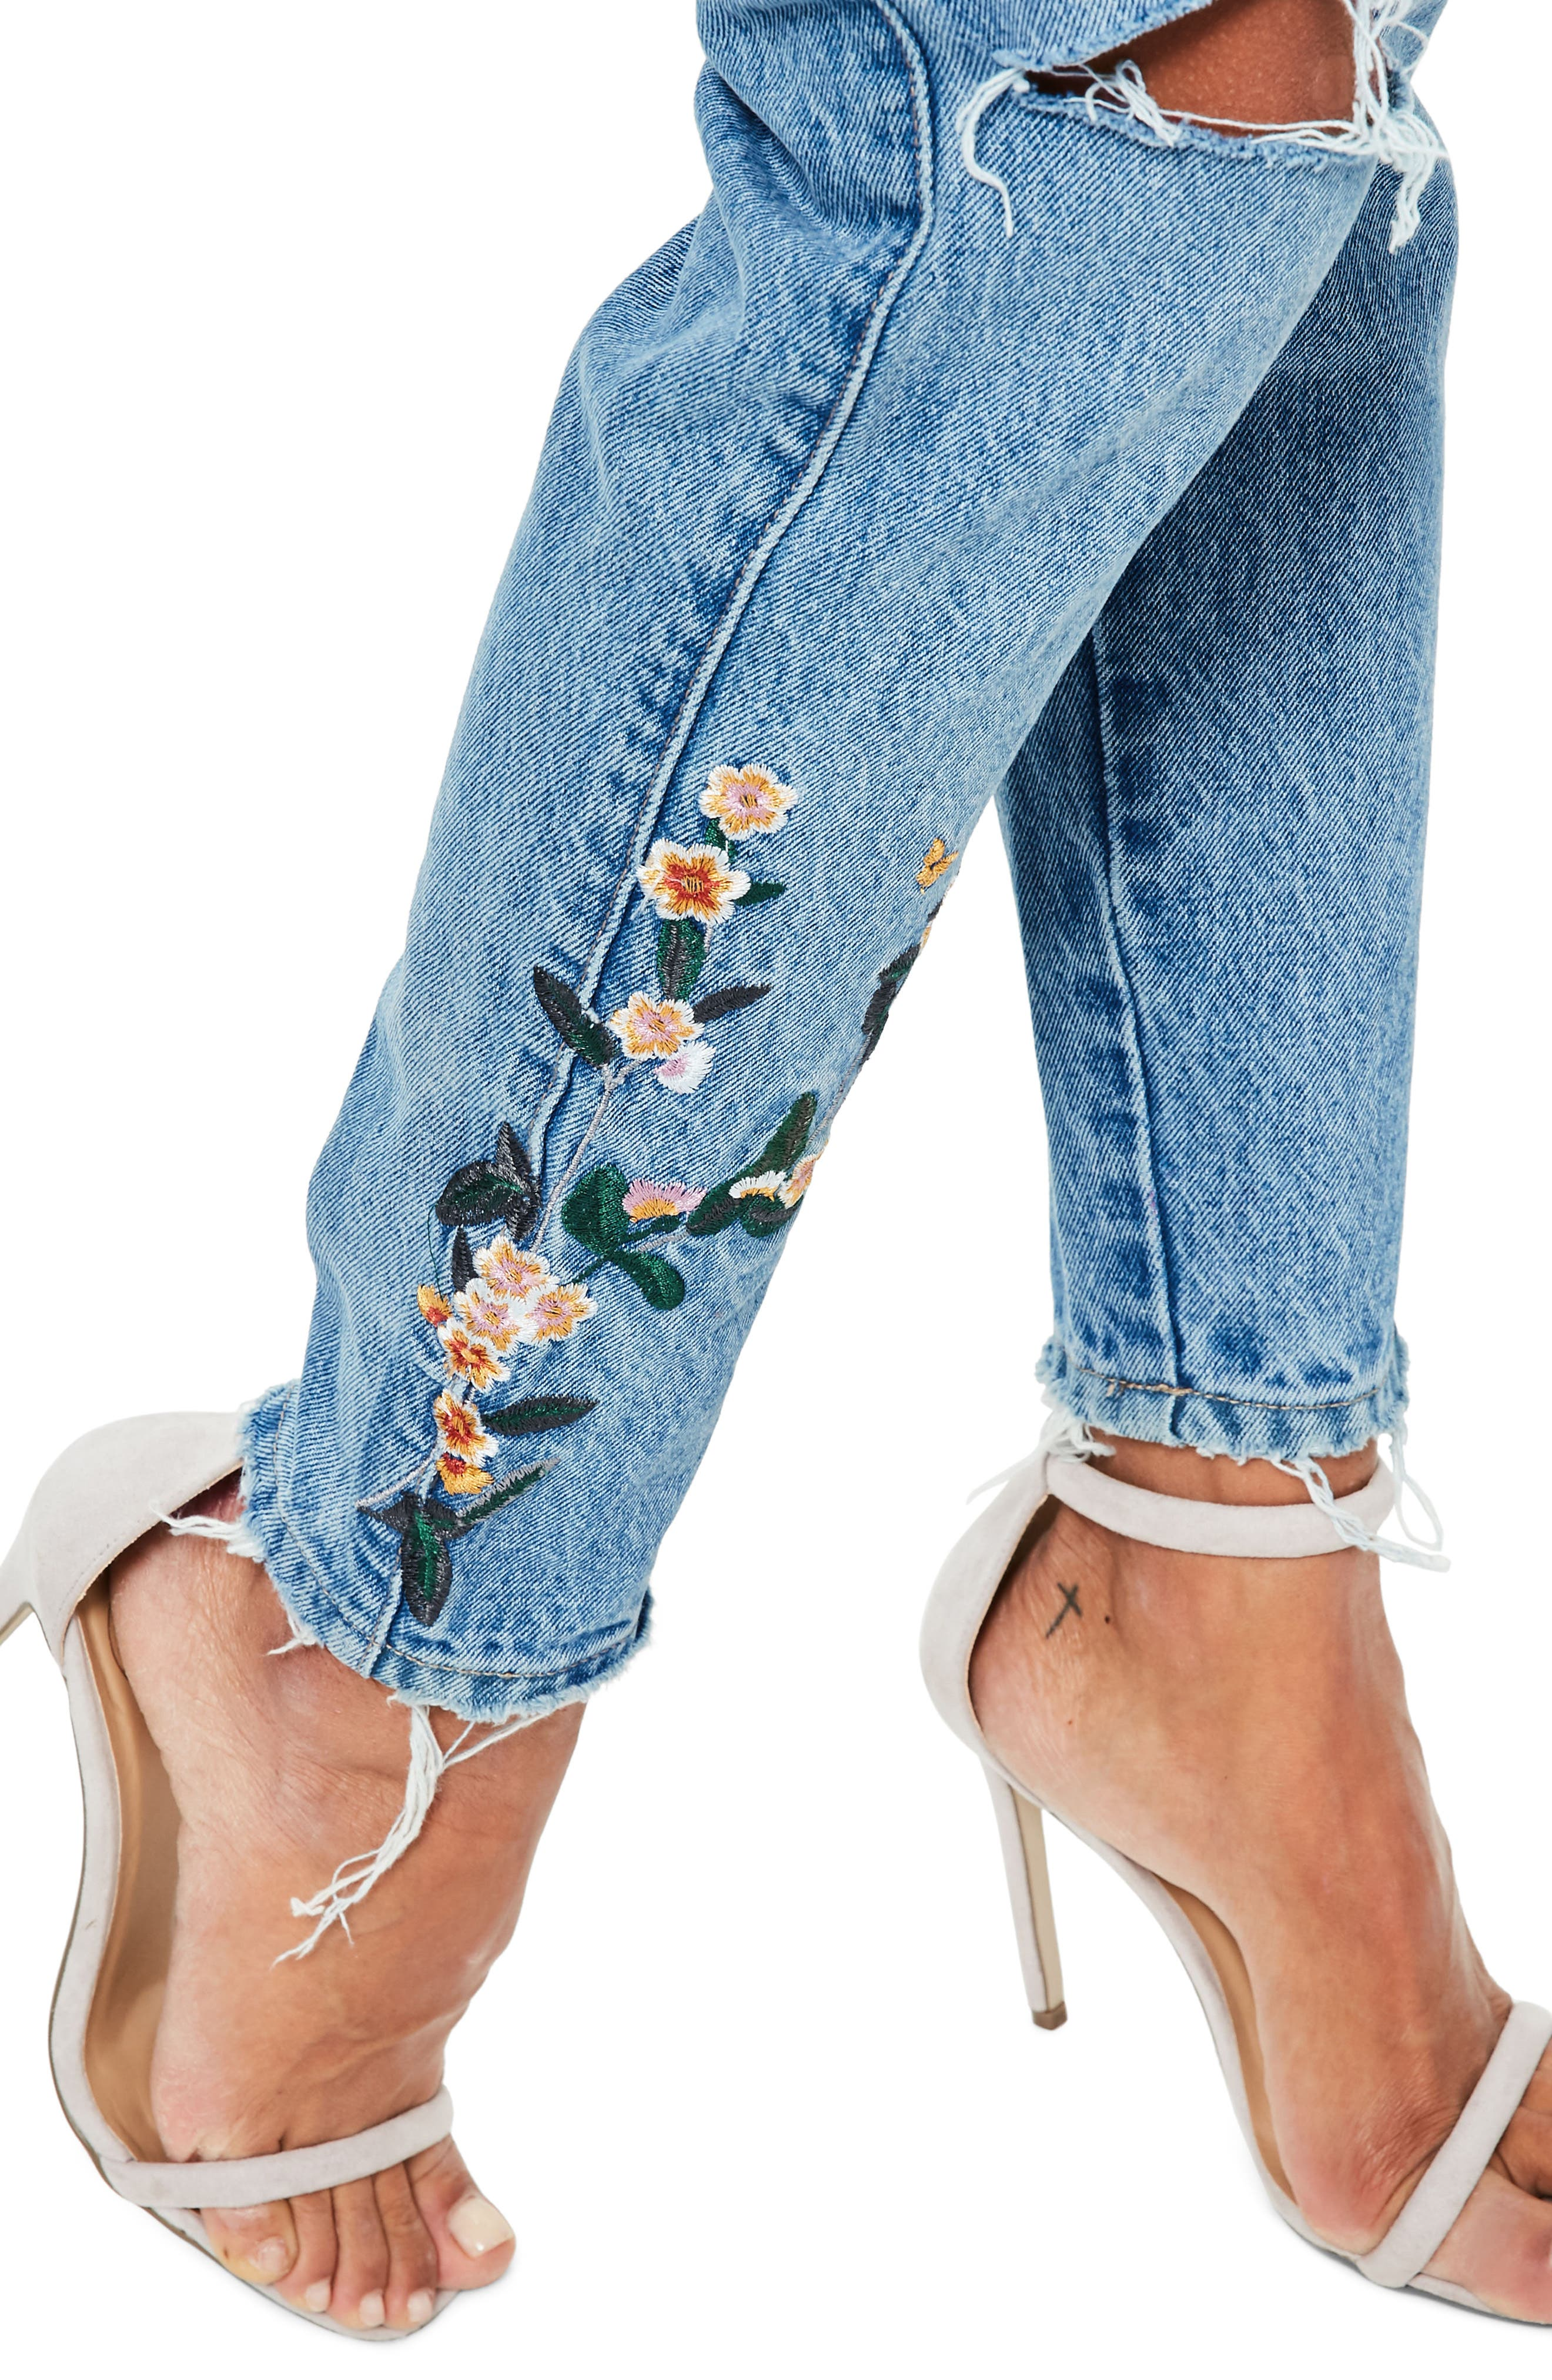 Riot Ripped High Waist Embroidered Jeans,                             Alternate thumbnail 4, color,                             400